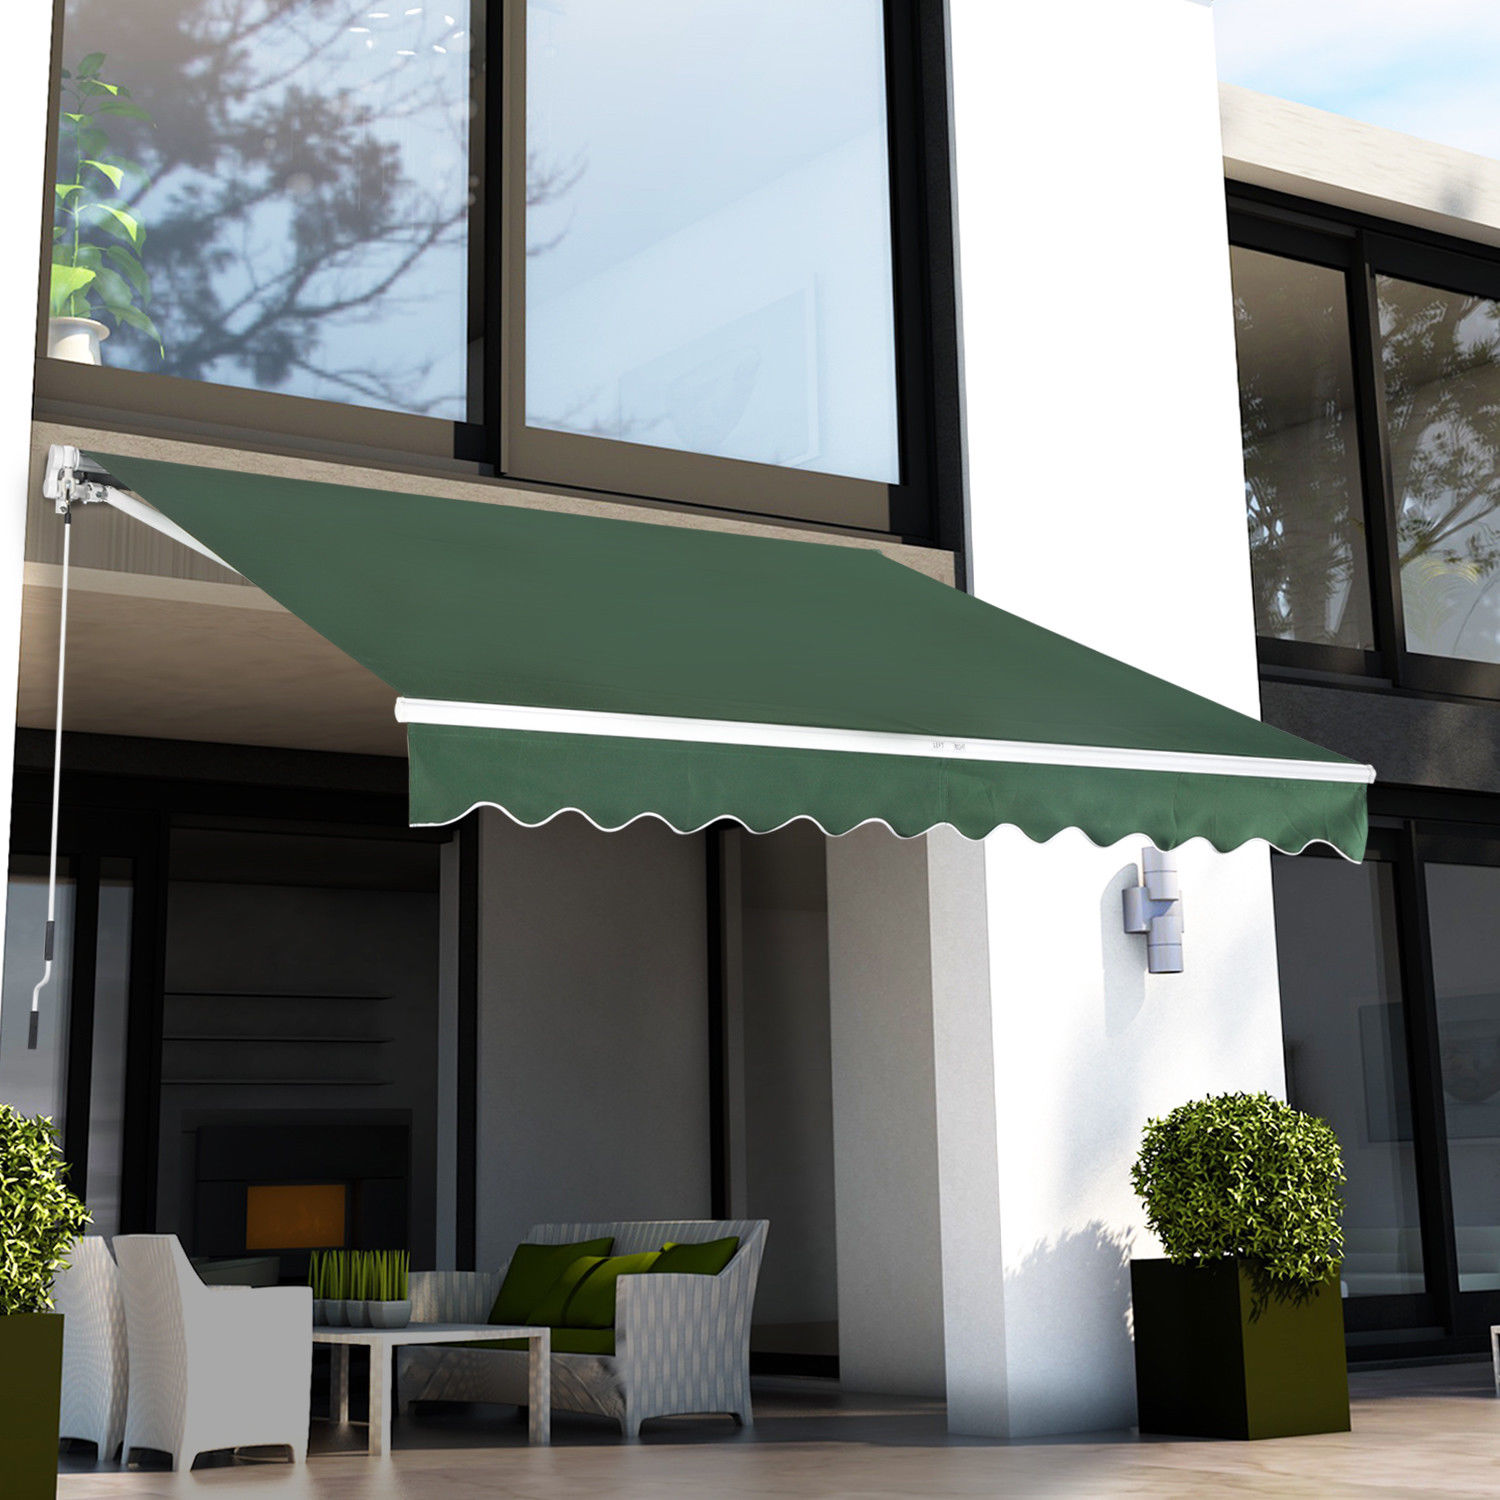 cover door outsunny patio outdoor canopy aluminum frame descriptions awning itm x window